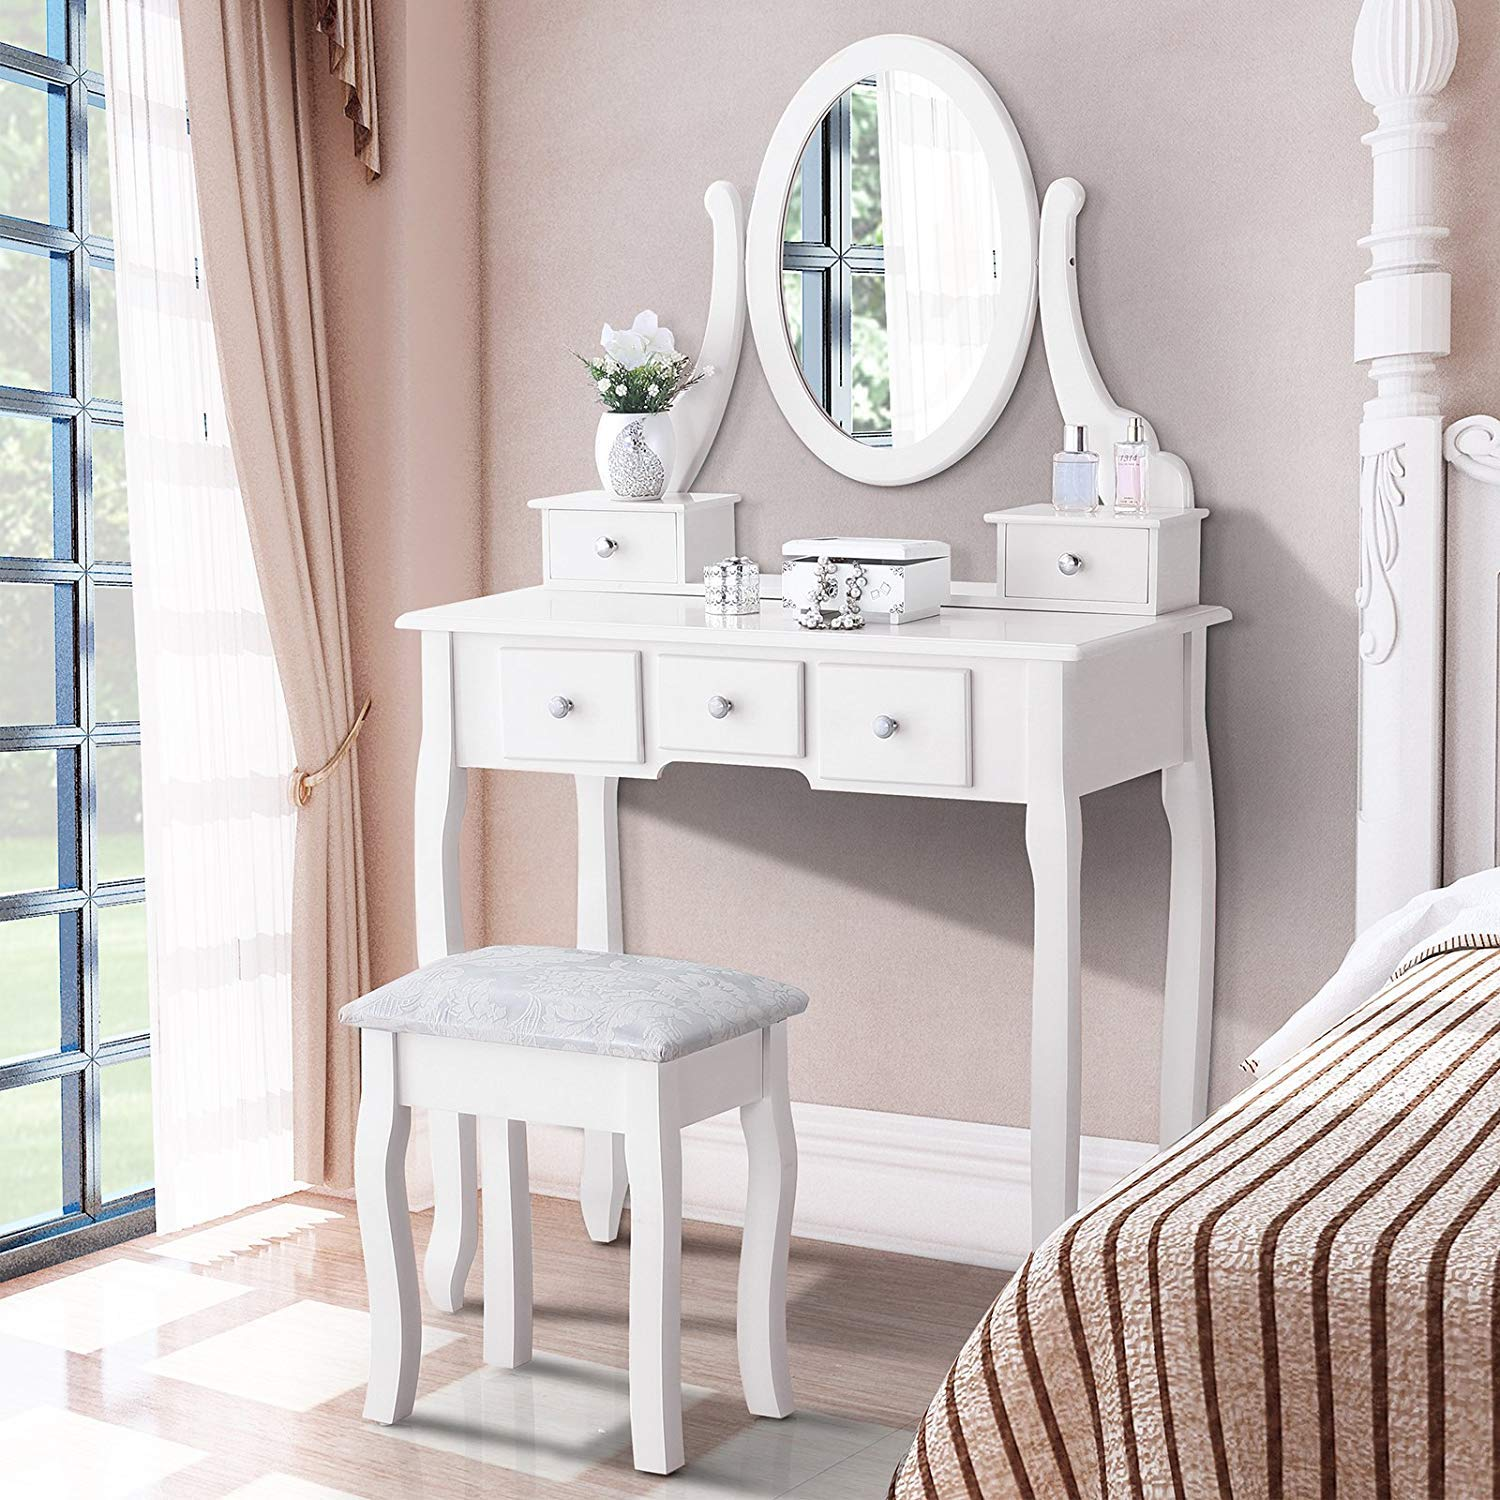 . Details about White Vanity Dressing Table Set With Mirror Stool 5 Drawers  Makeup Desk Bedroom